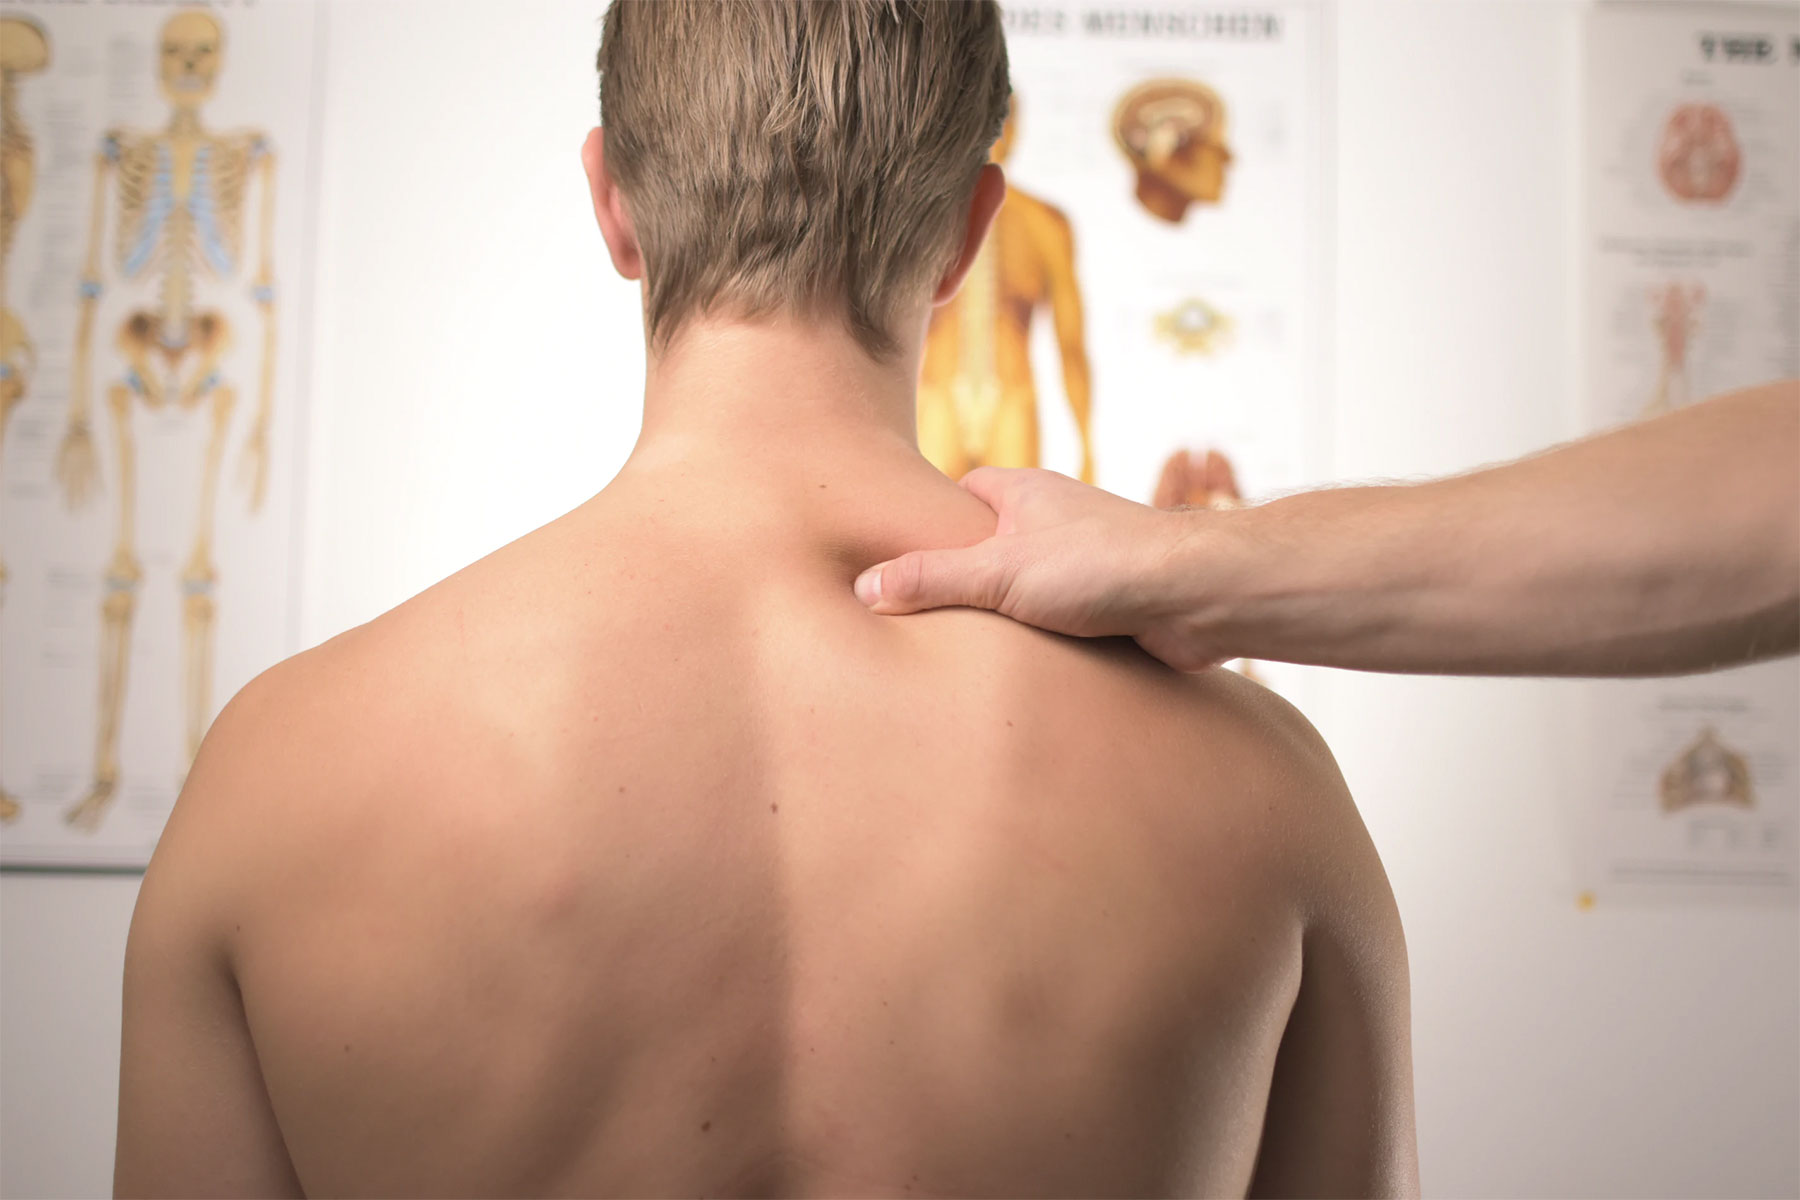 man receiving physical therapy massage on his back